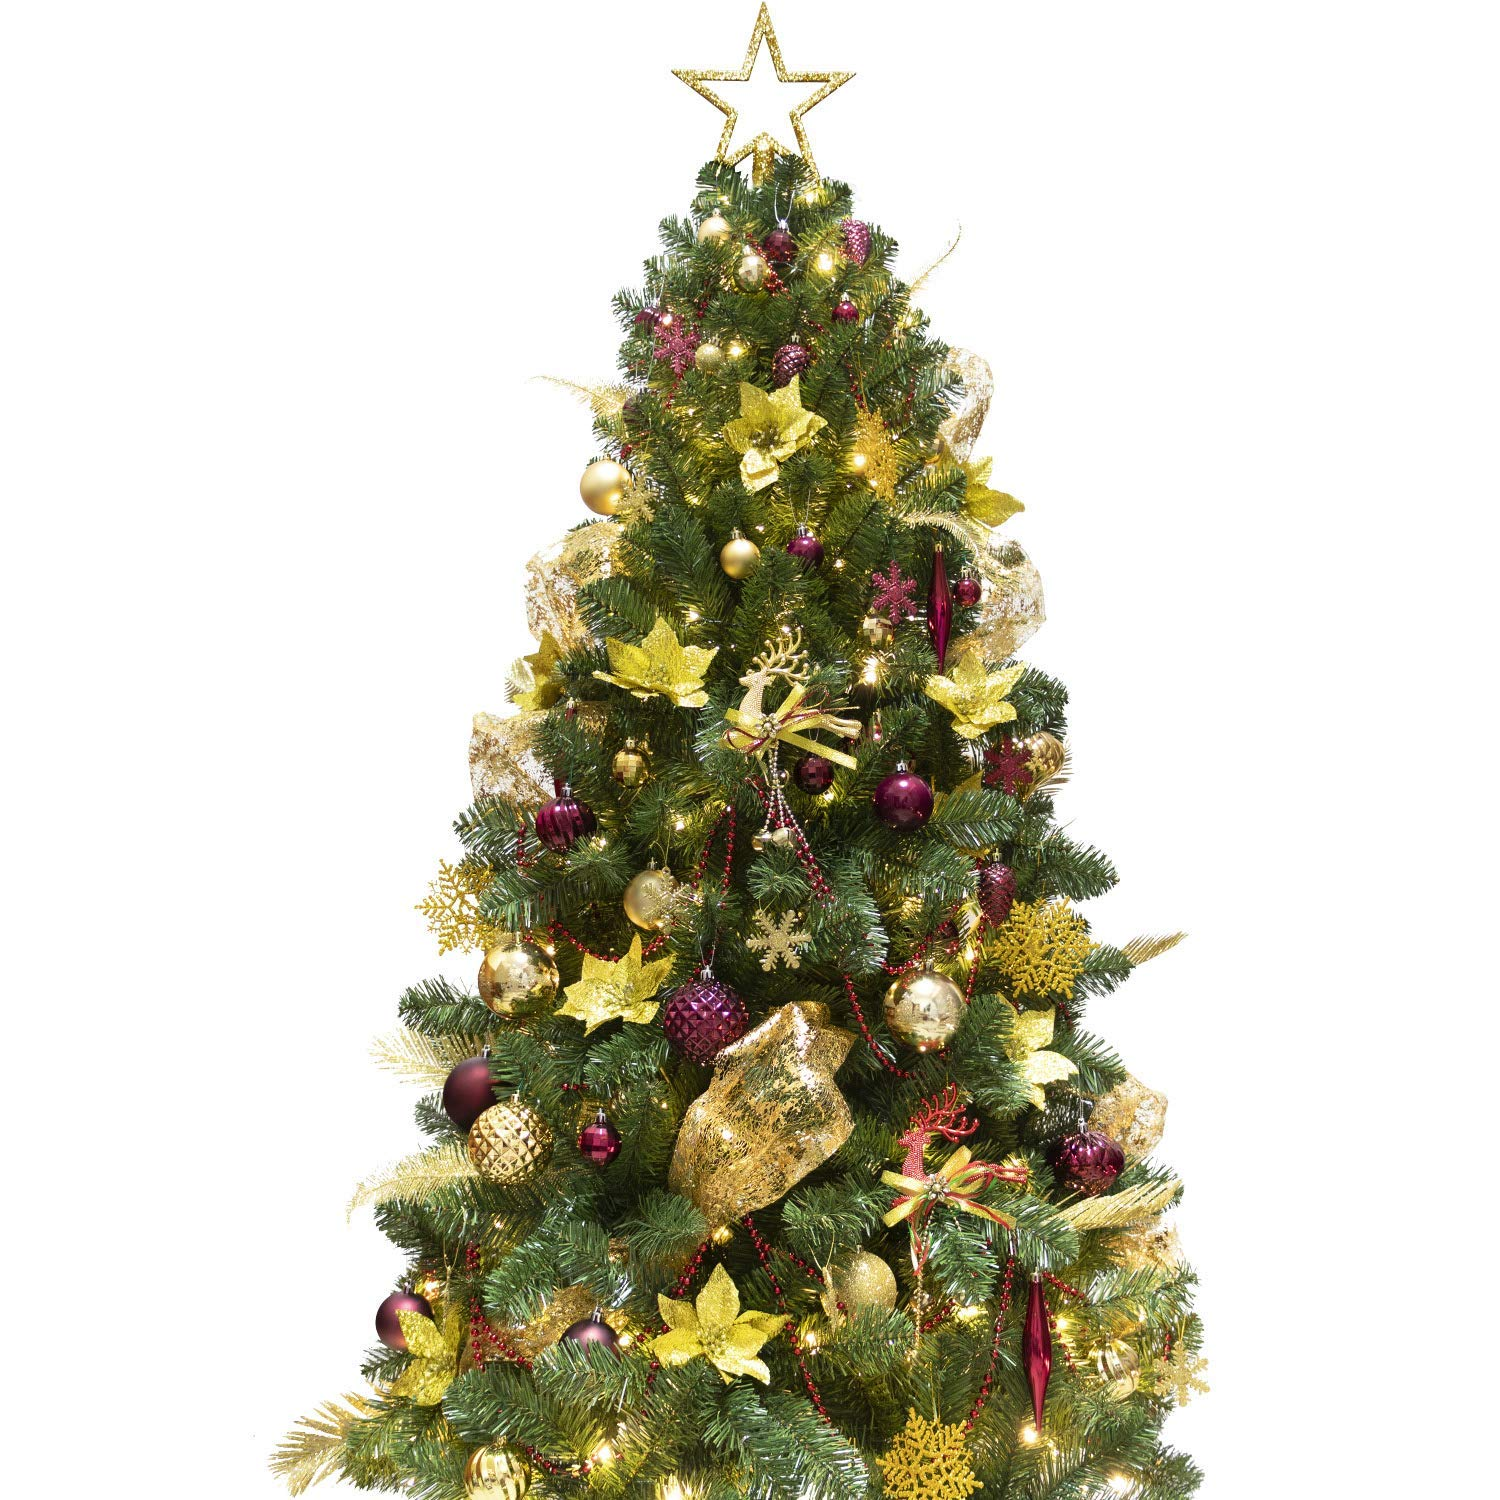 Review of - KI Store Artificial Christmas Tree with Decoration Ornaments